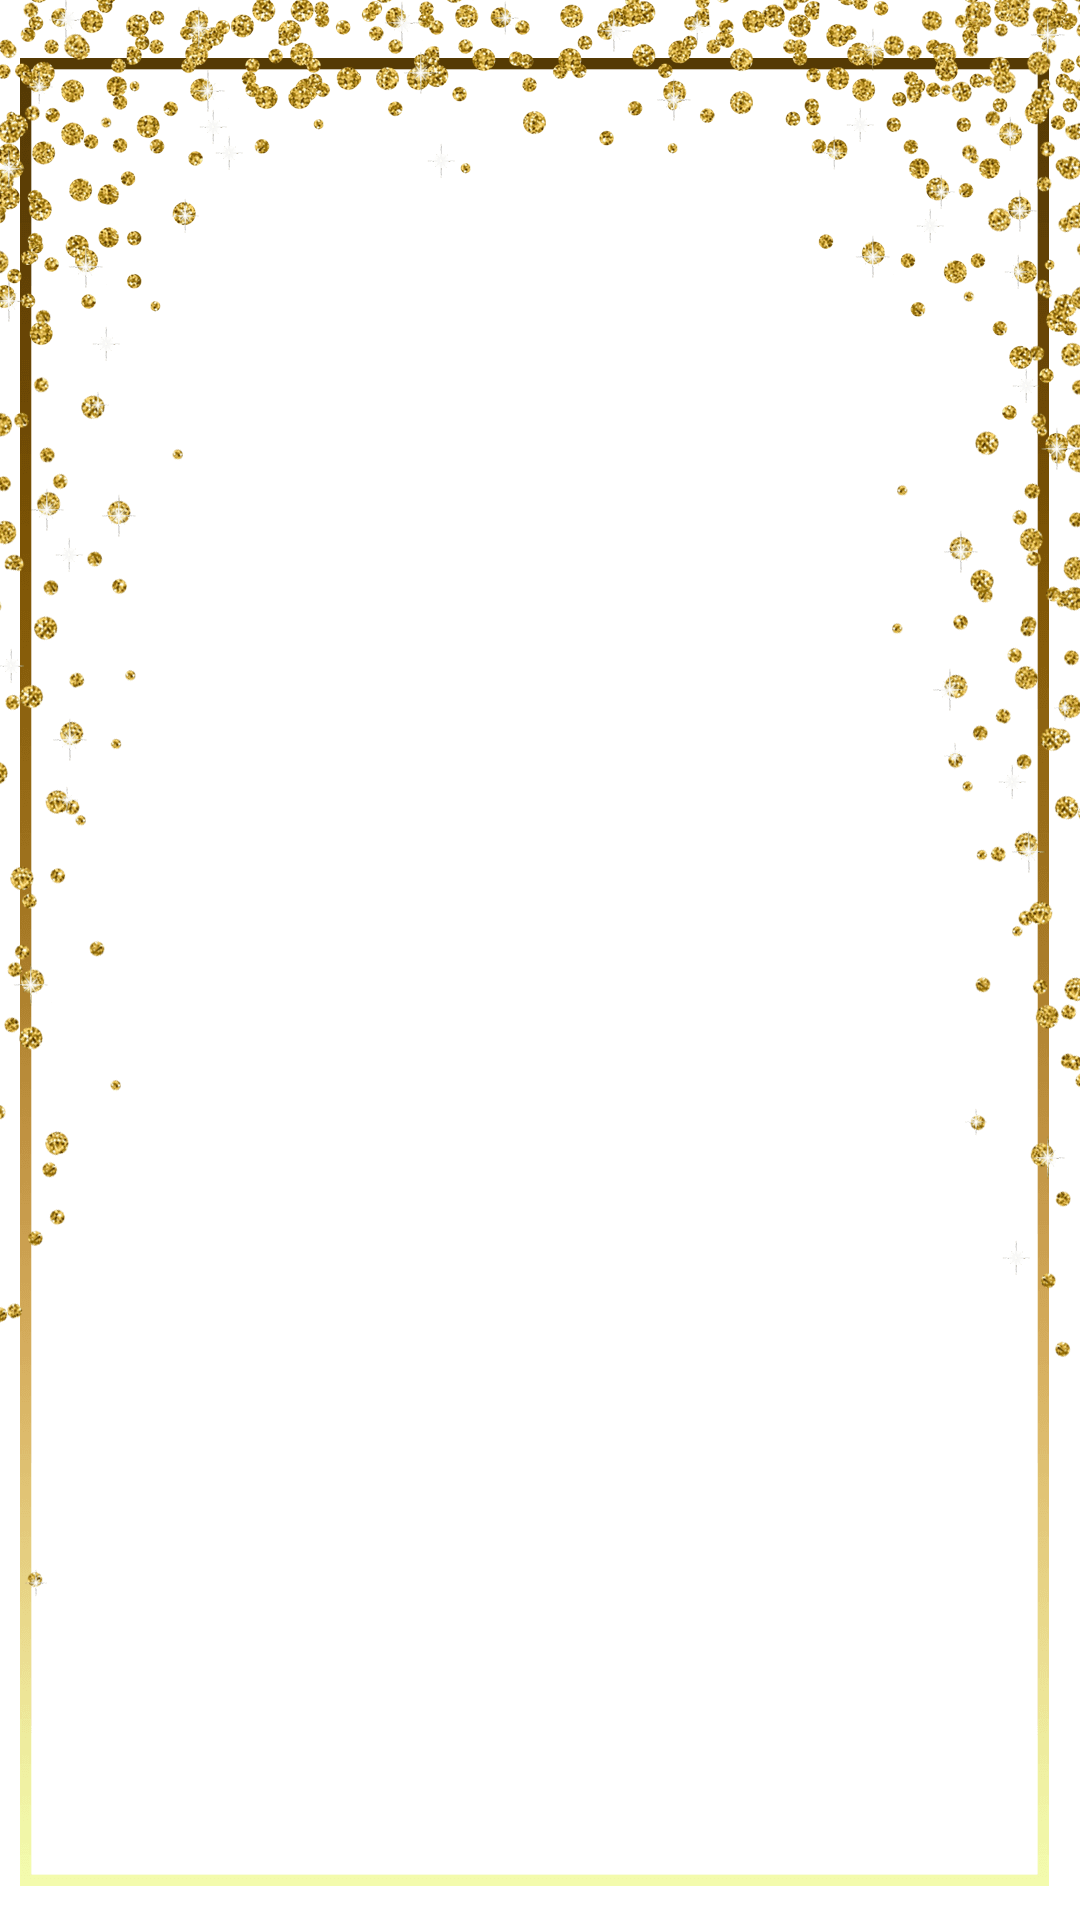 Gold Glitter Engagement Snapchat Filter | Geofilter Maker on FilterPop